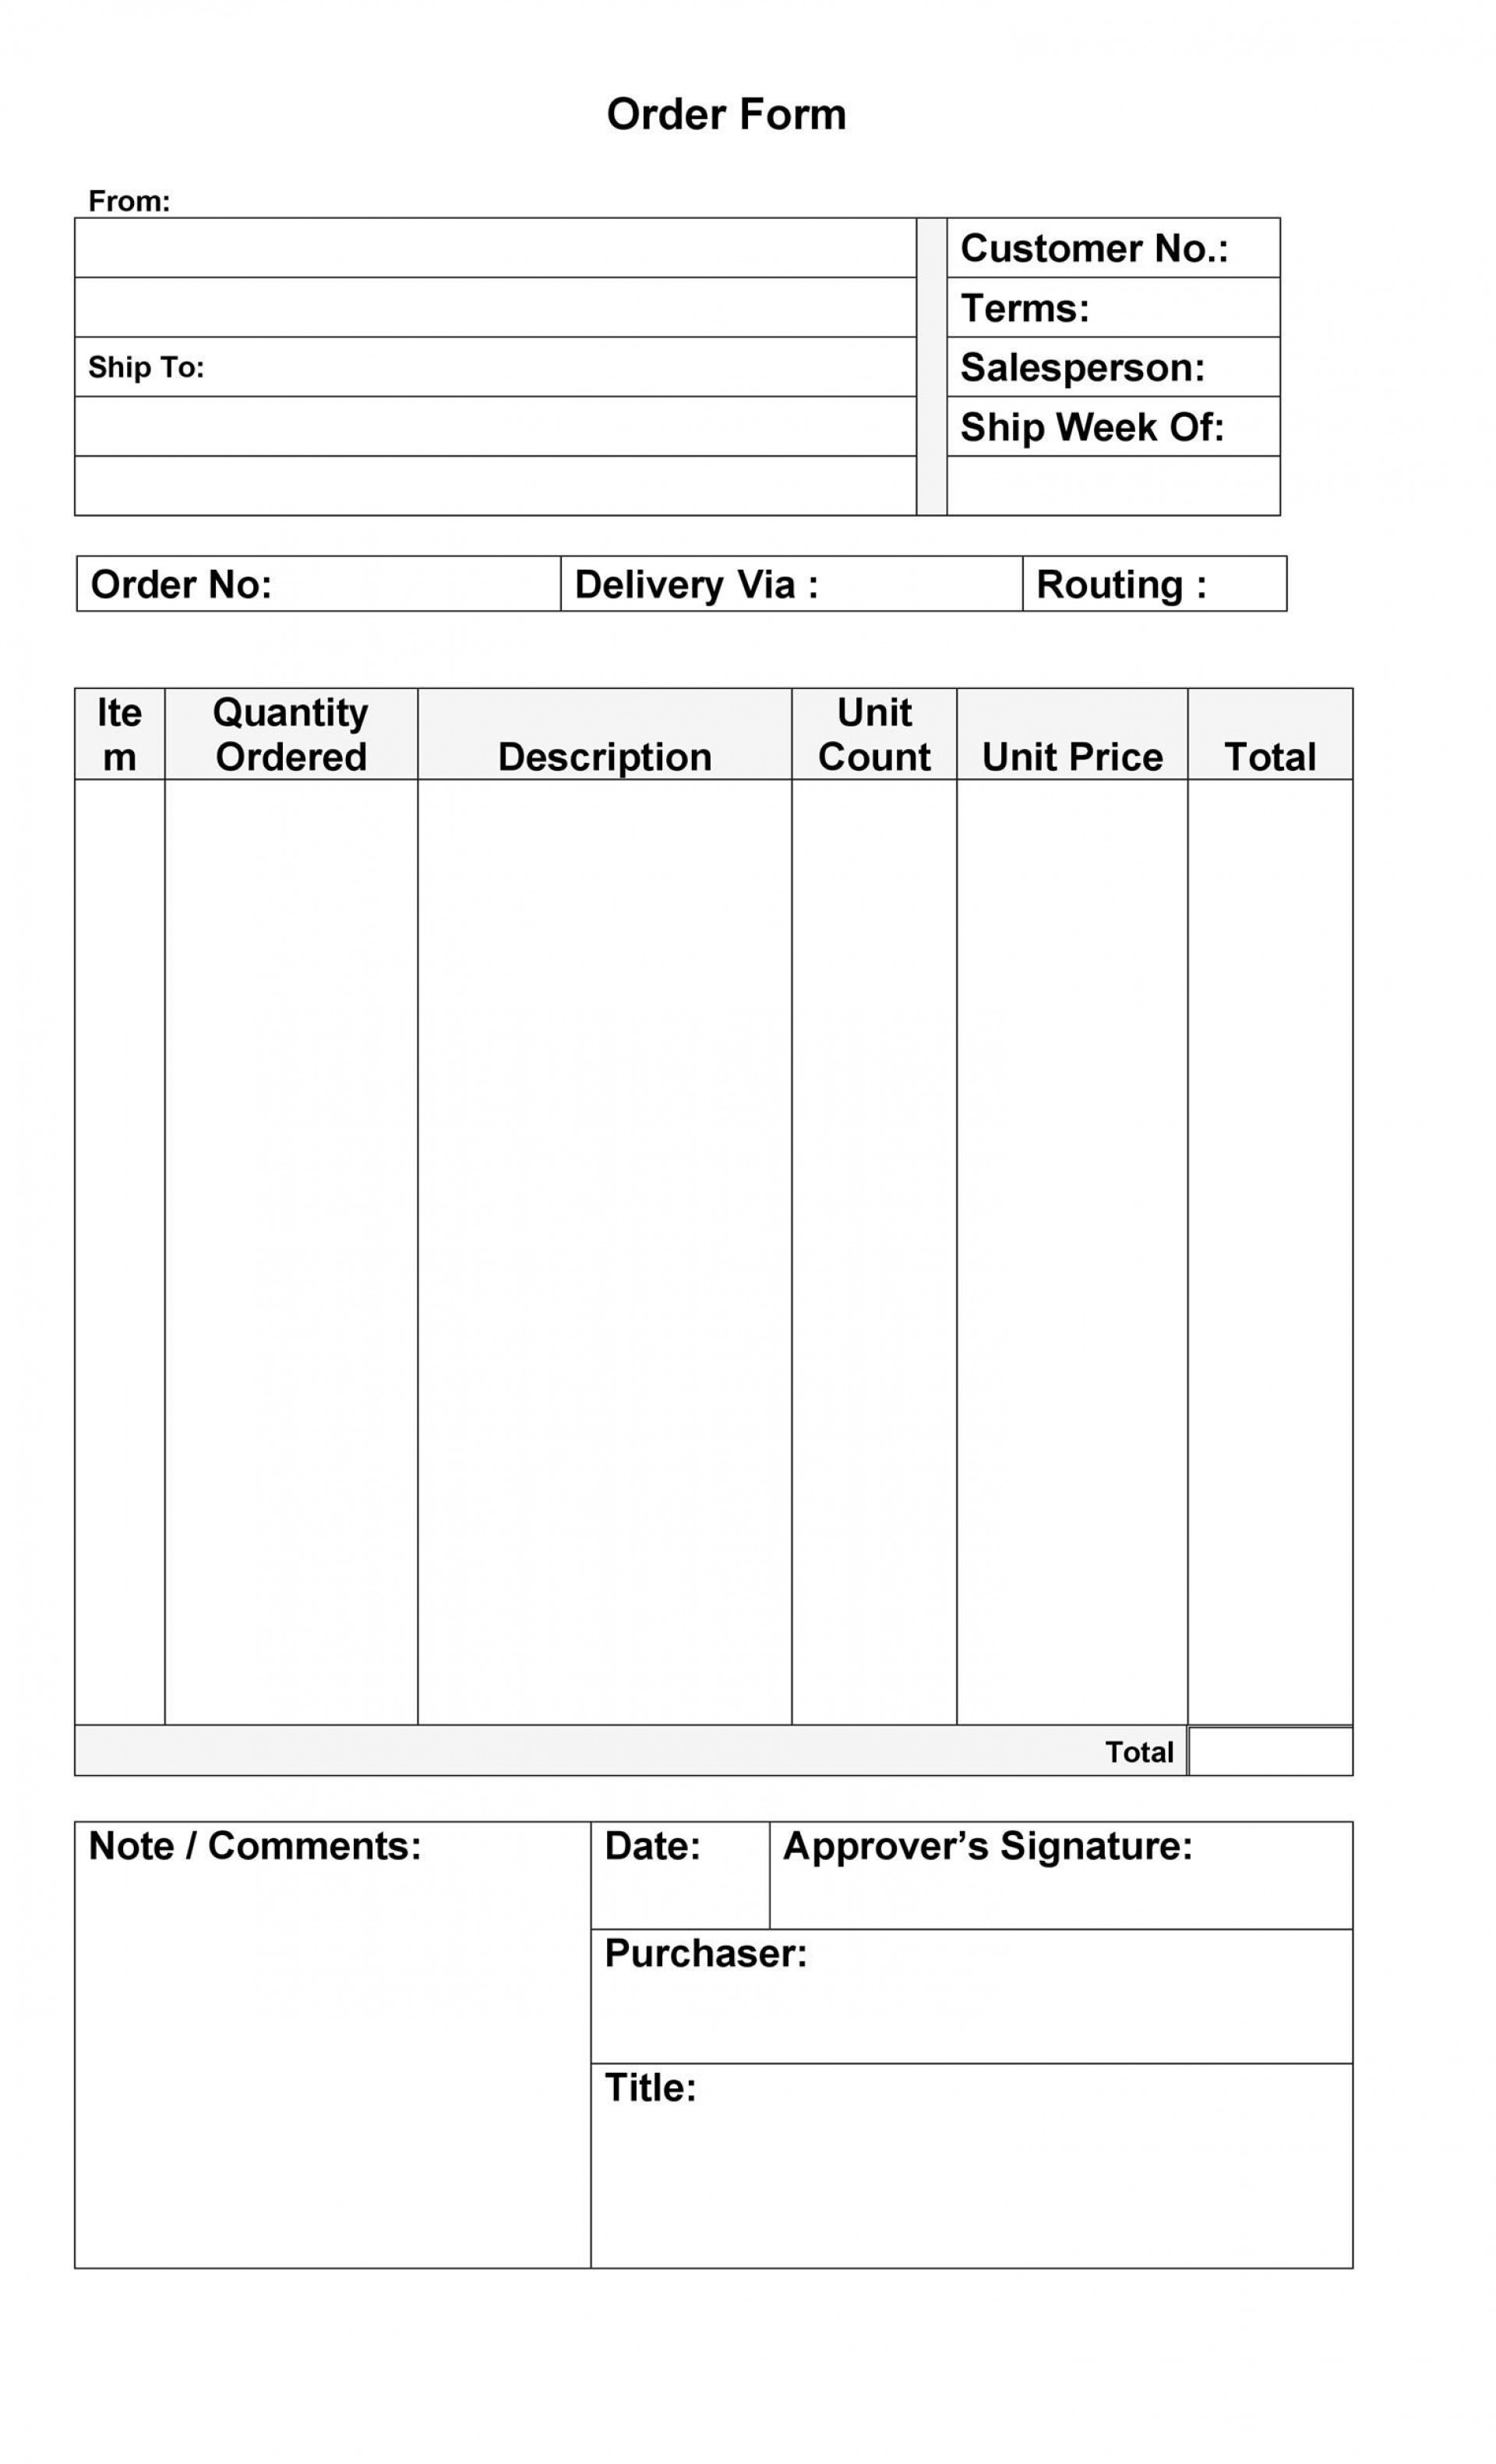 007 Fearsome Free Order Form Template Word High Def  T Shirt Job Application Registration1920